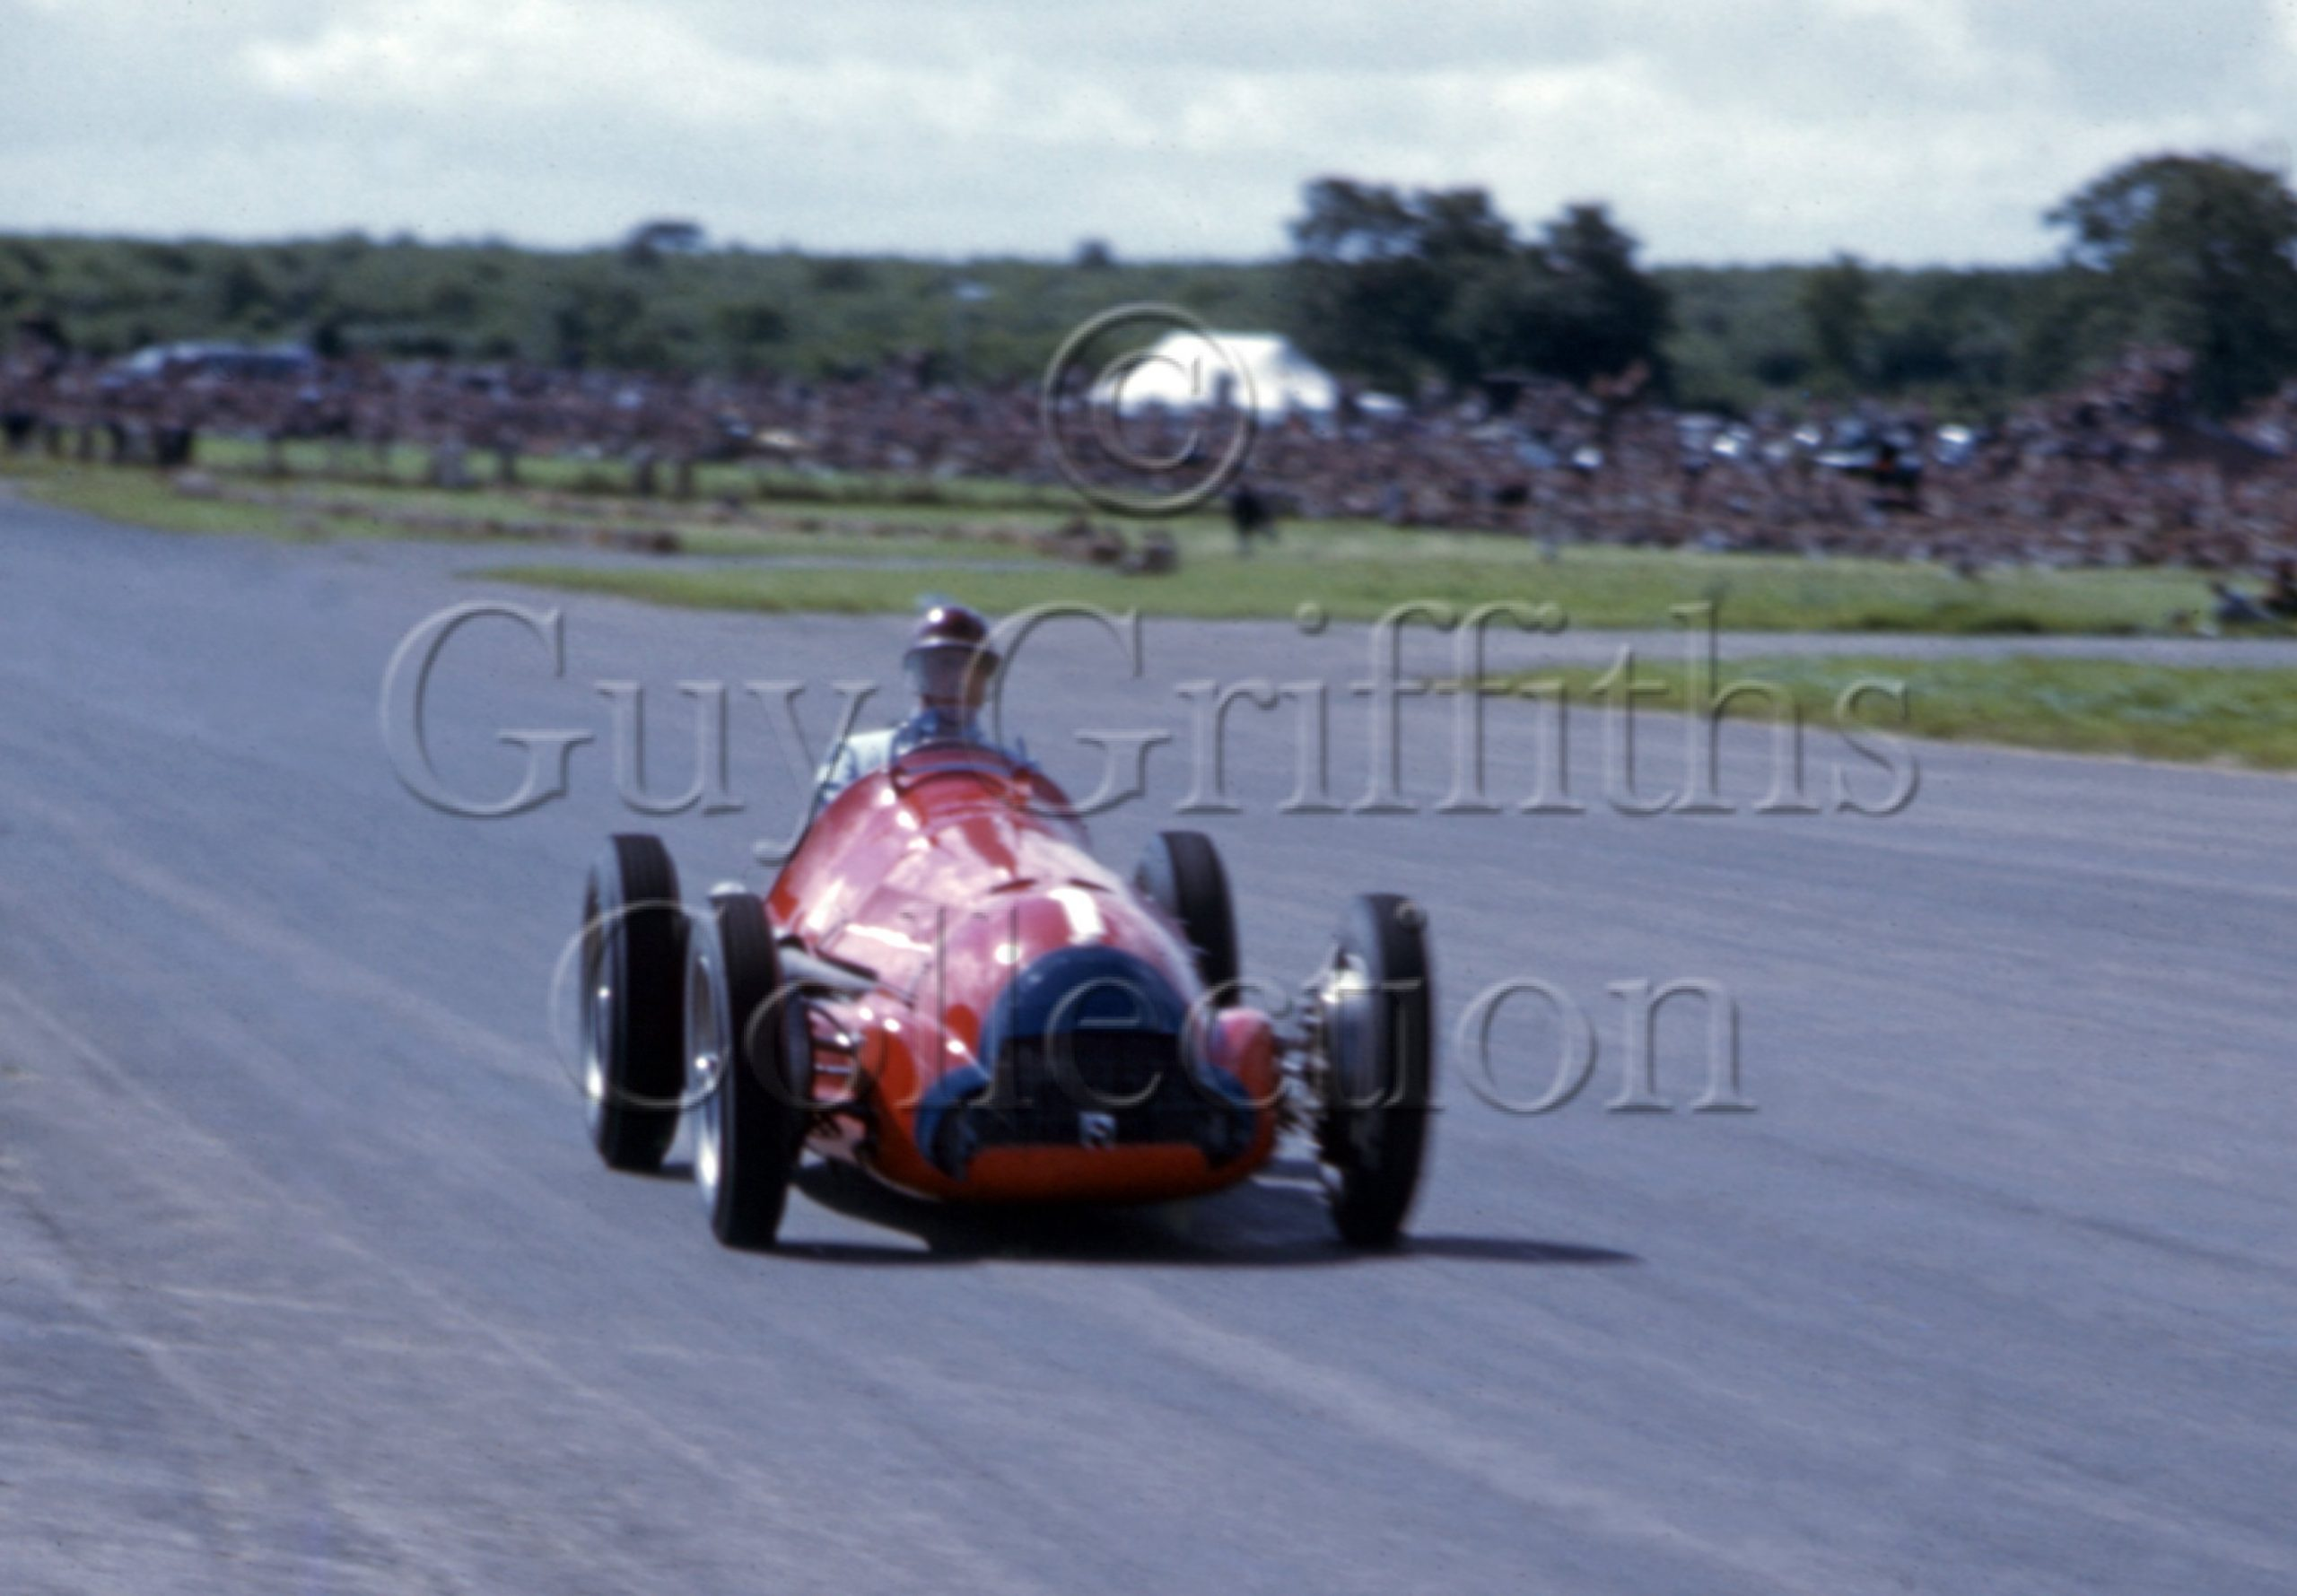 C-3-26–N-Farina–Alfa-Romeo-158–Silverstone–26-08-1950.jpg - Guy Griffiths Collection